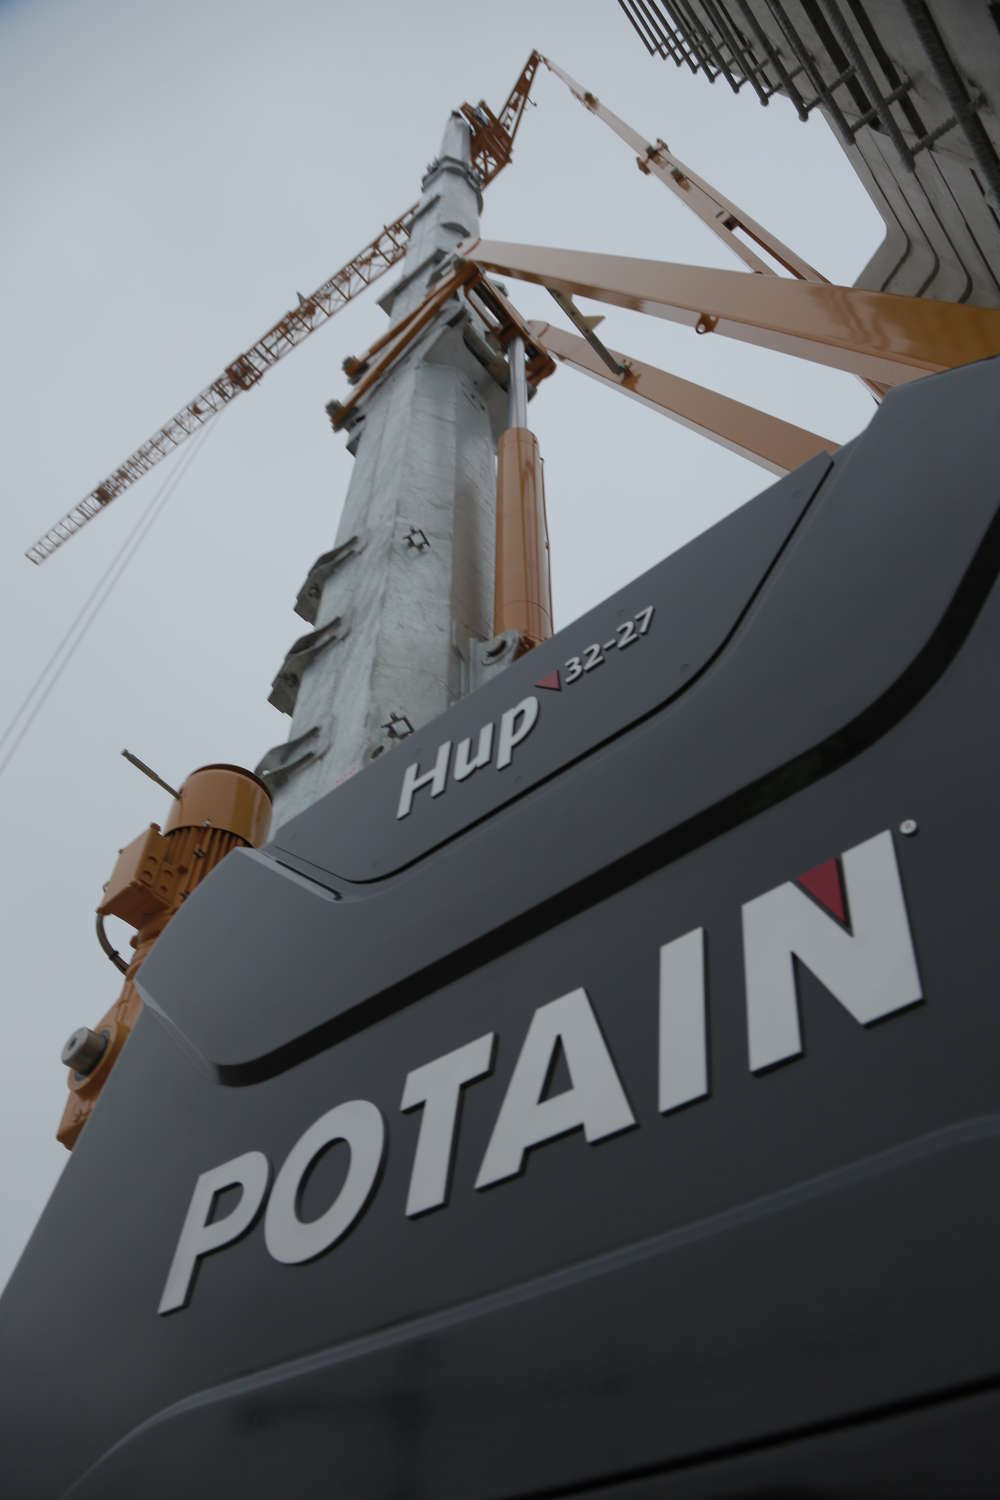 According to the company, the pioneering Potain Hup 32-27 is the first from the exclusive range and offers unique and innovative design features.